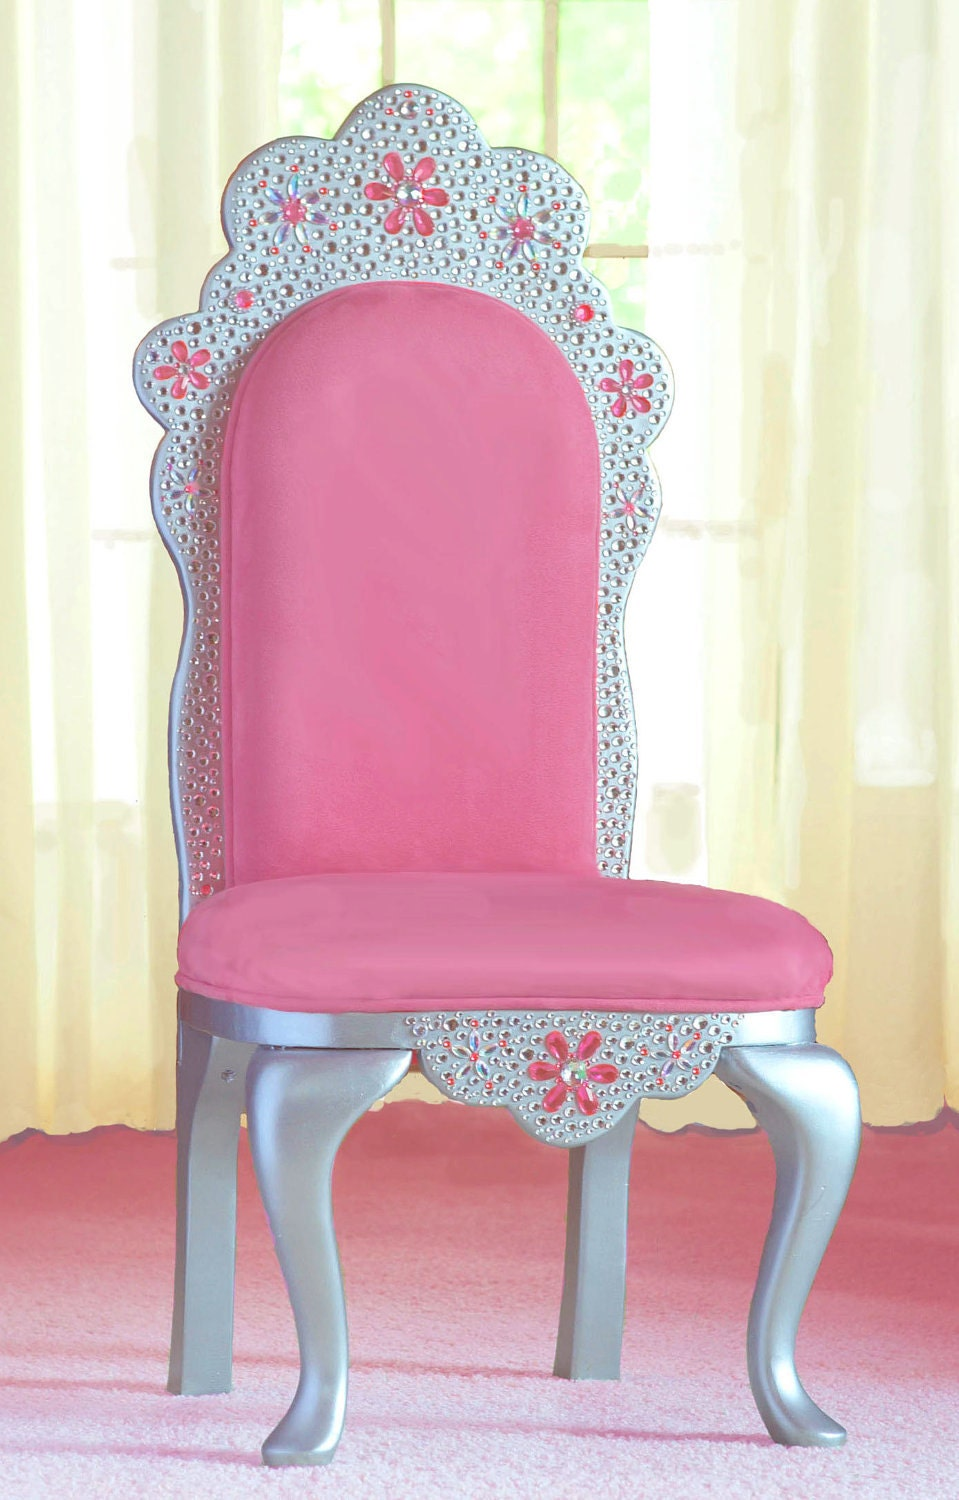 Items similar to diamond tiara princess chair in pink faux suede on etsy